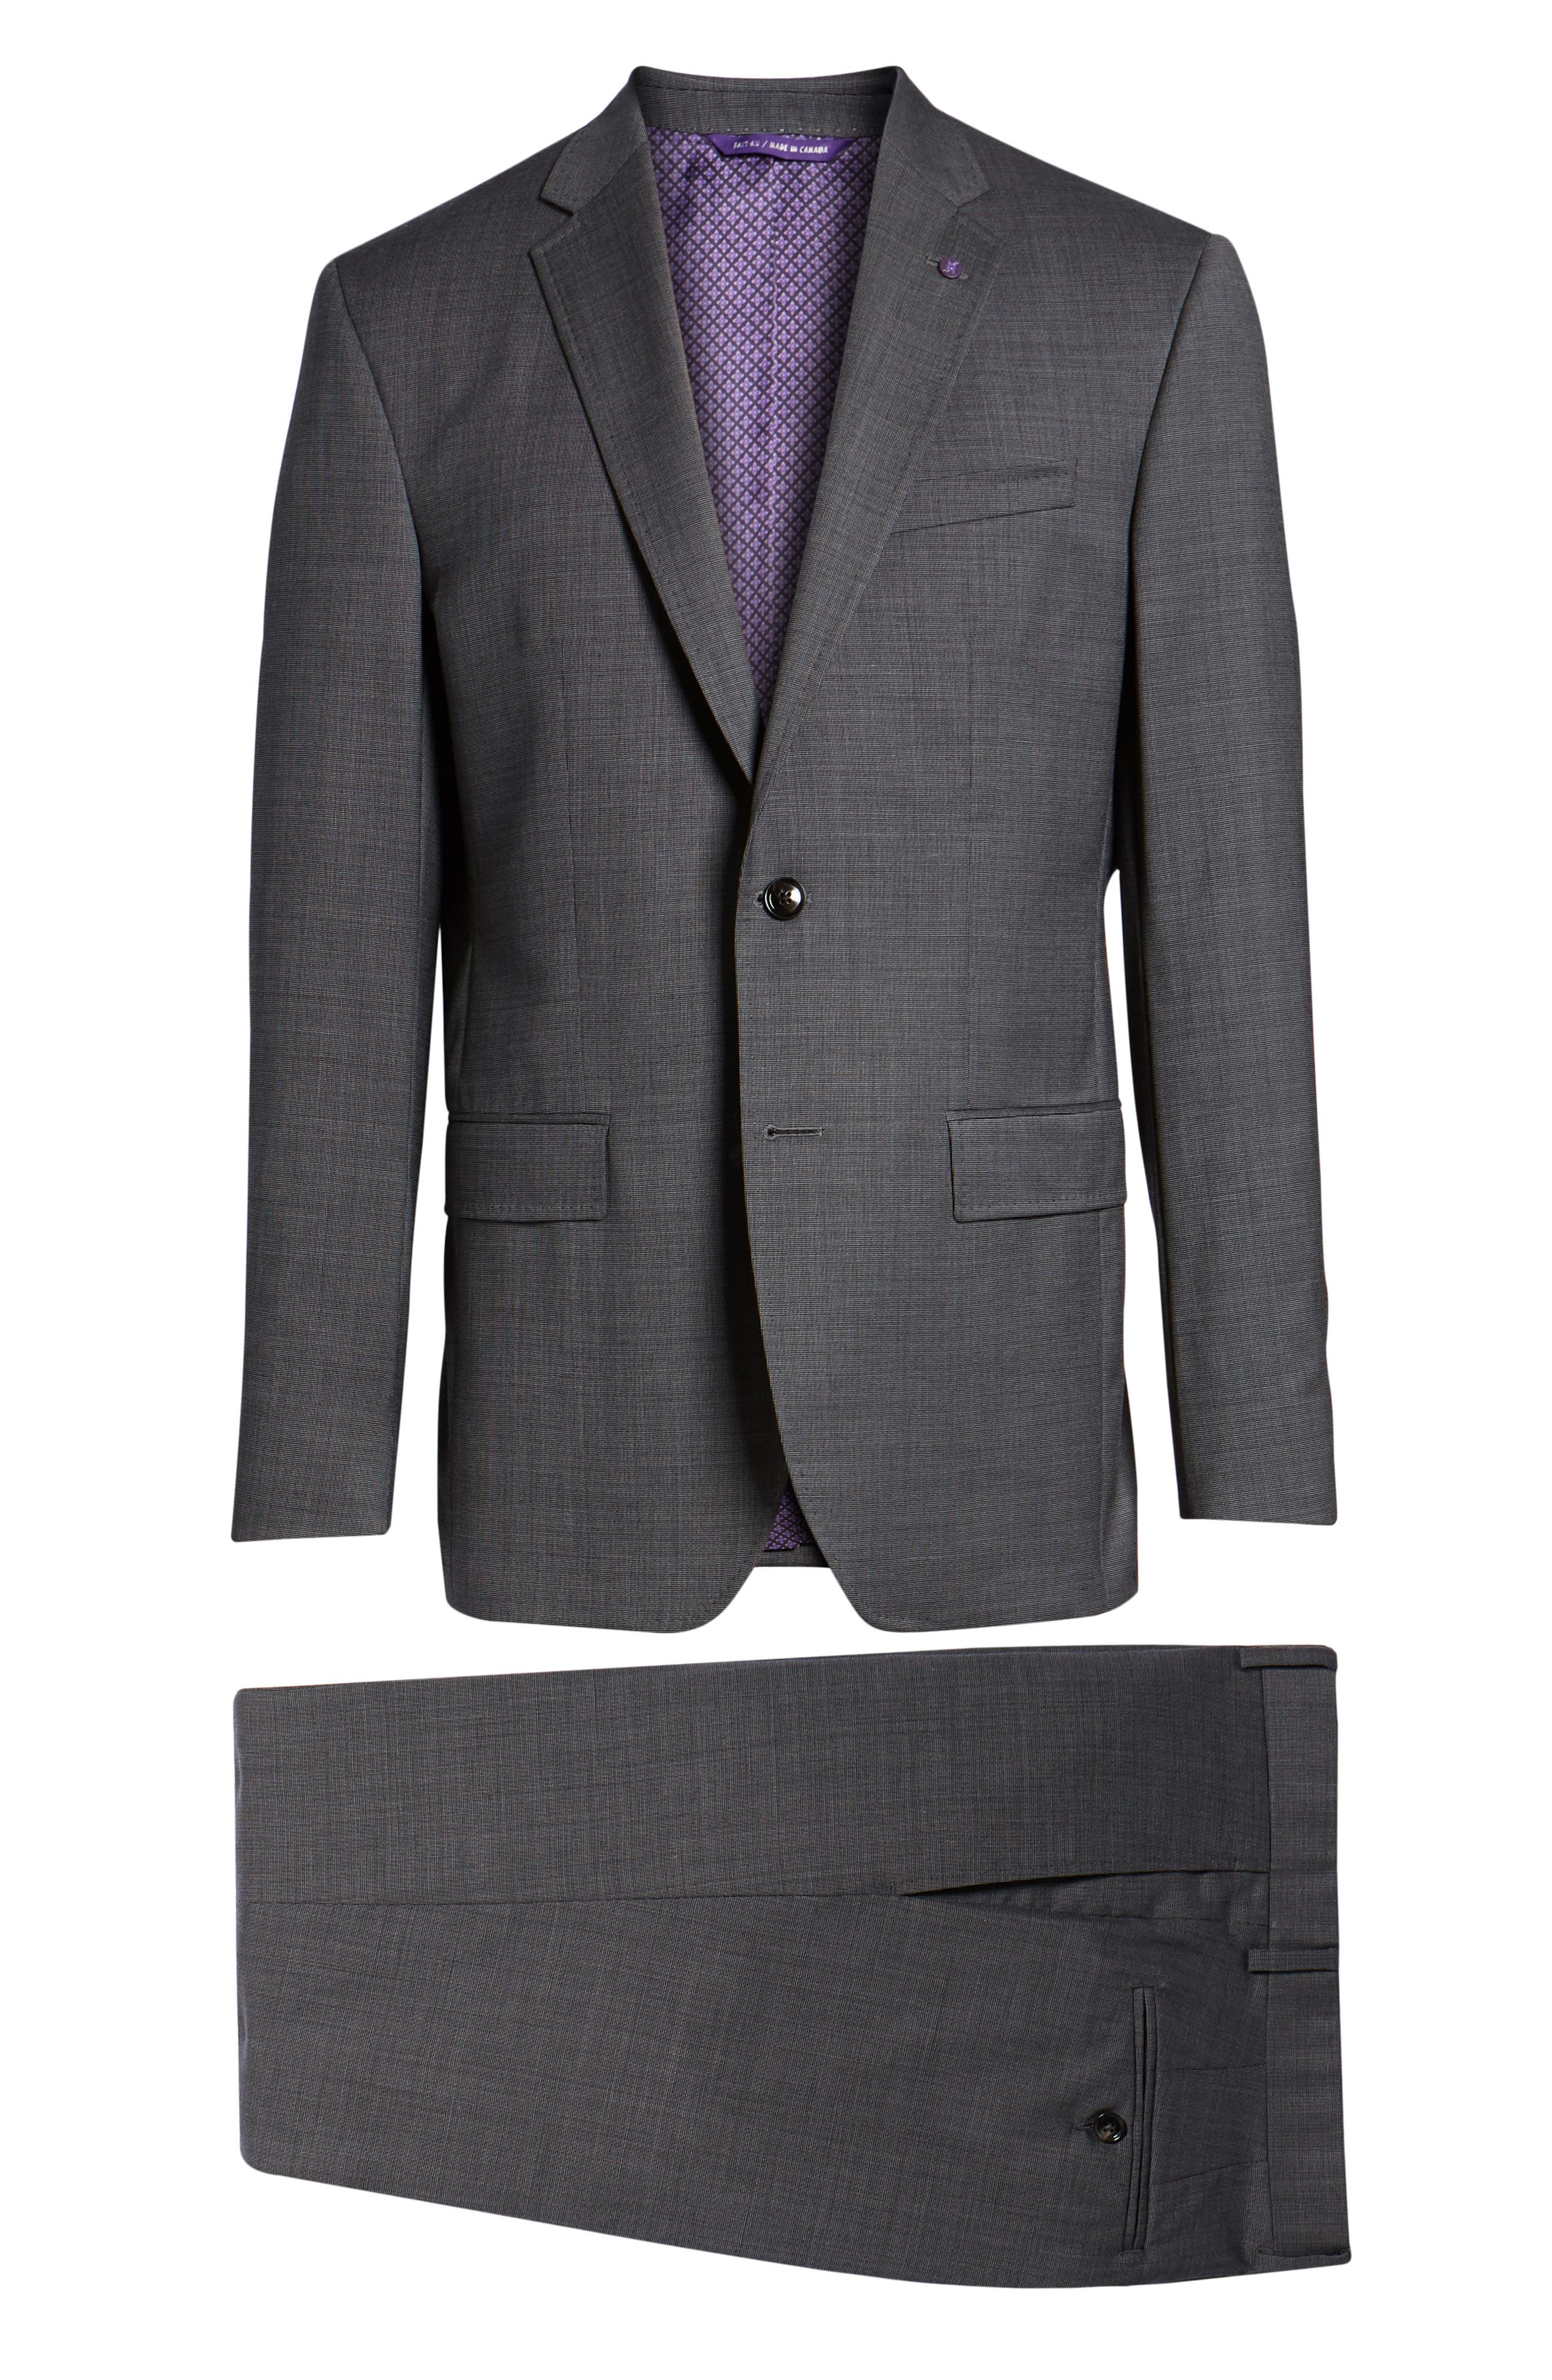 Jay Trim Fit Solid Wool Suit,                             Alternate thumbnail 8, color,                             Grey